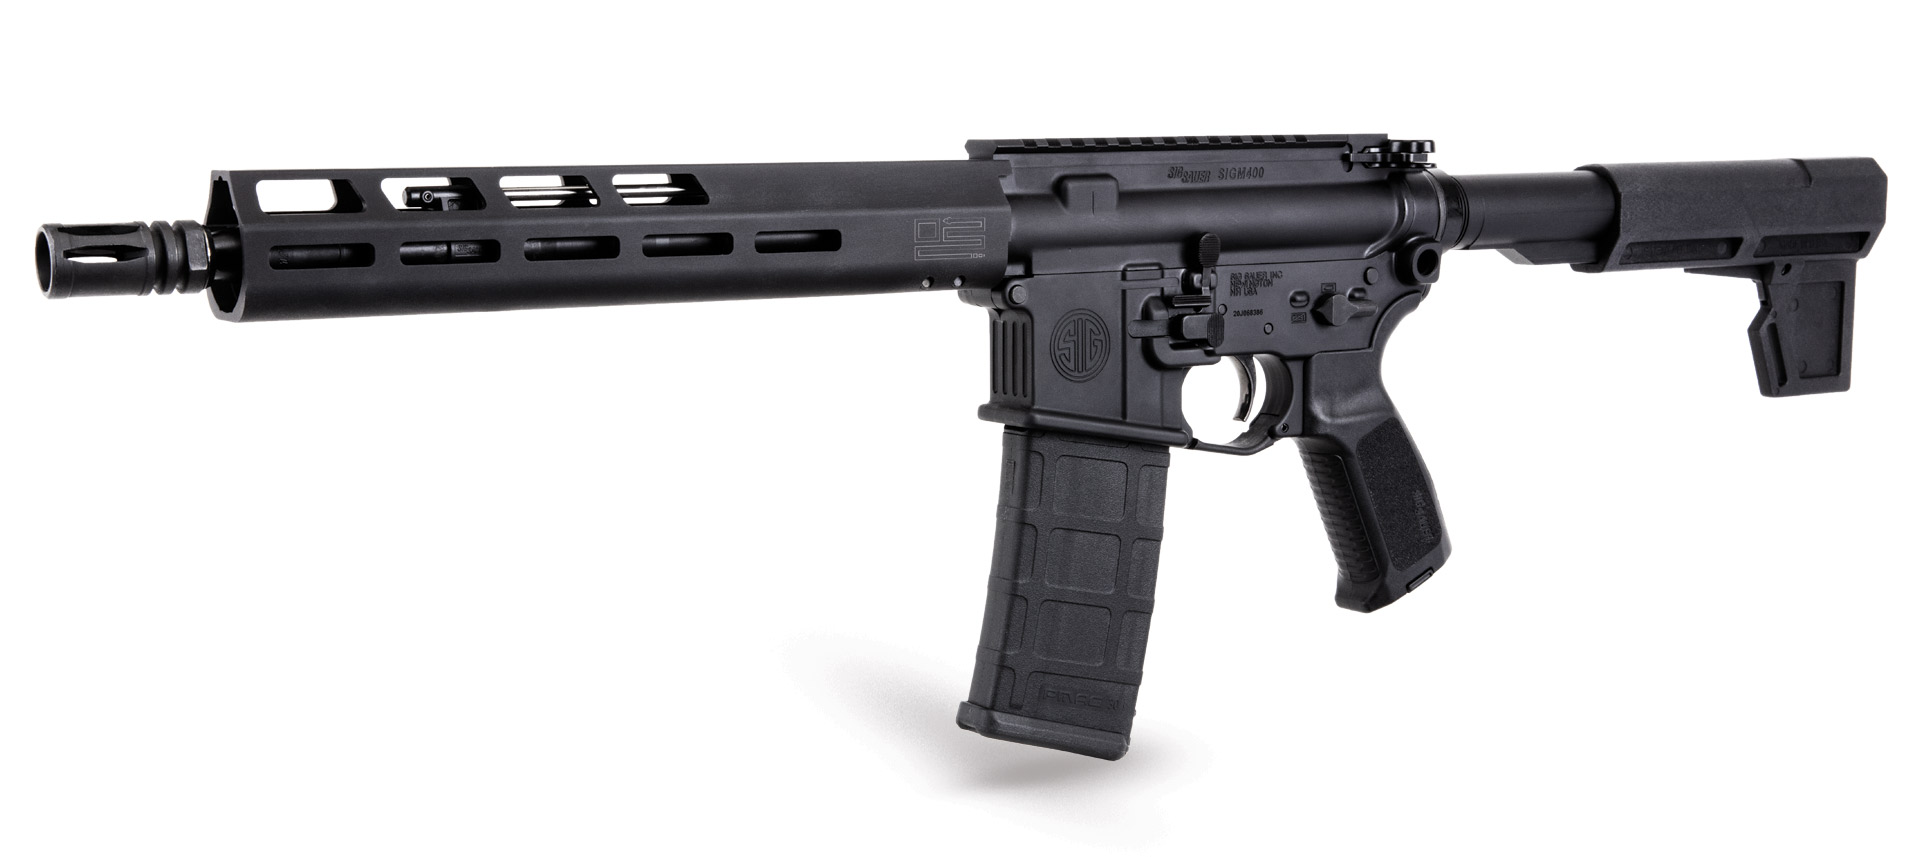 SIG SAUER Expands TREAD Brand with Introduction of M400 TREAD Pistol